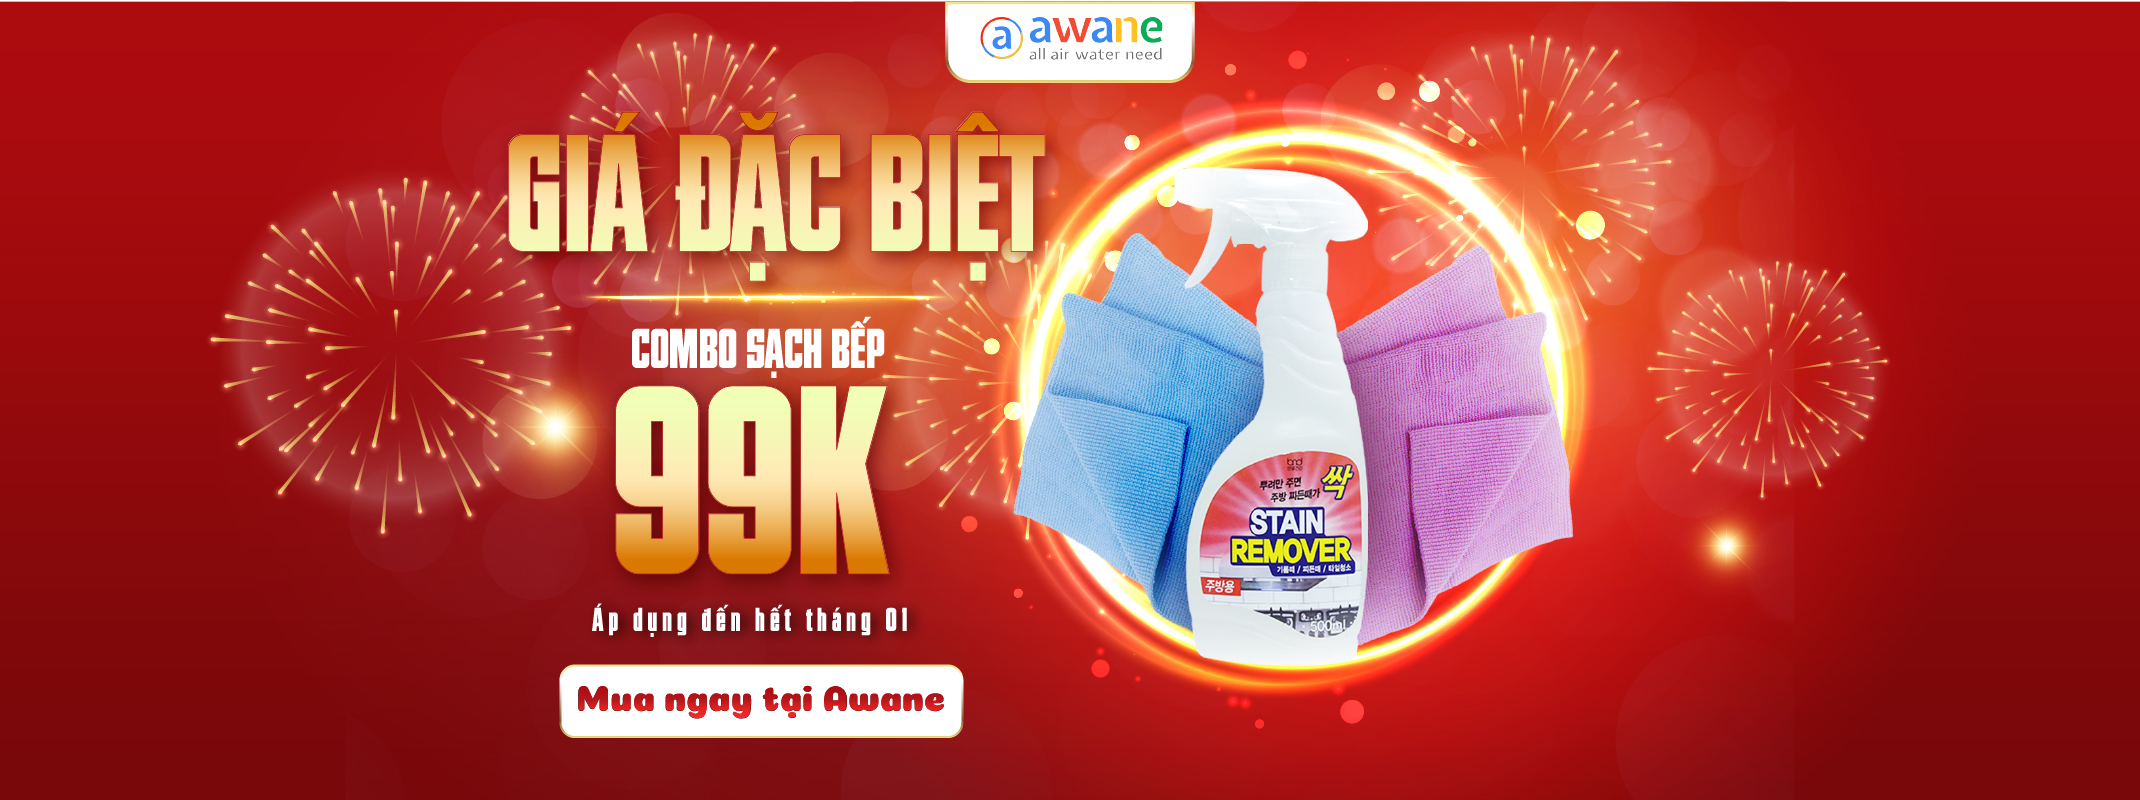 Xịt Lau Bếp Stain Removerbếp giá 99k